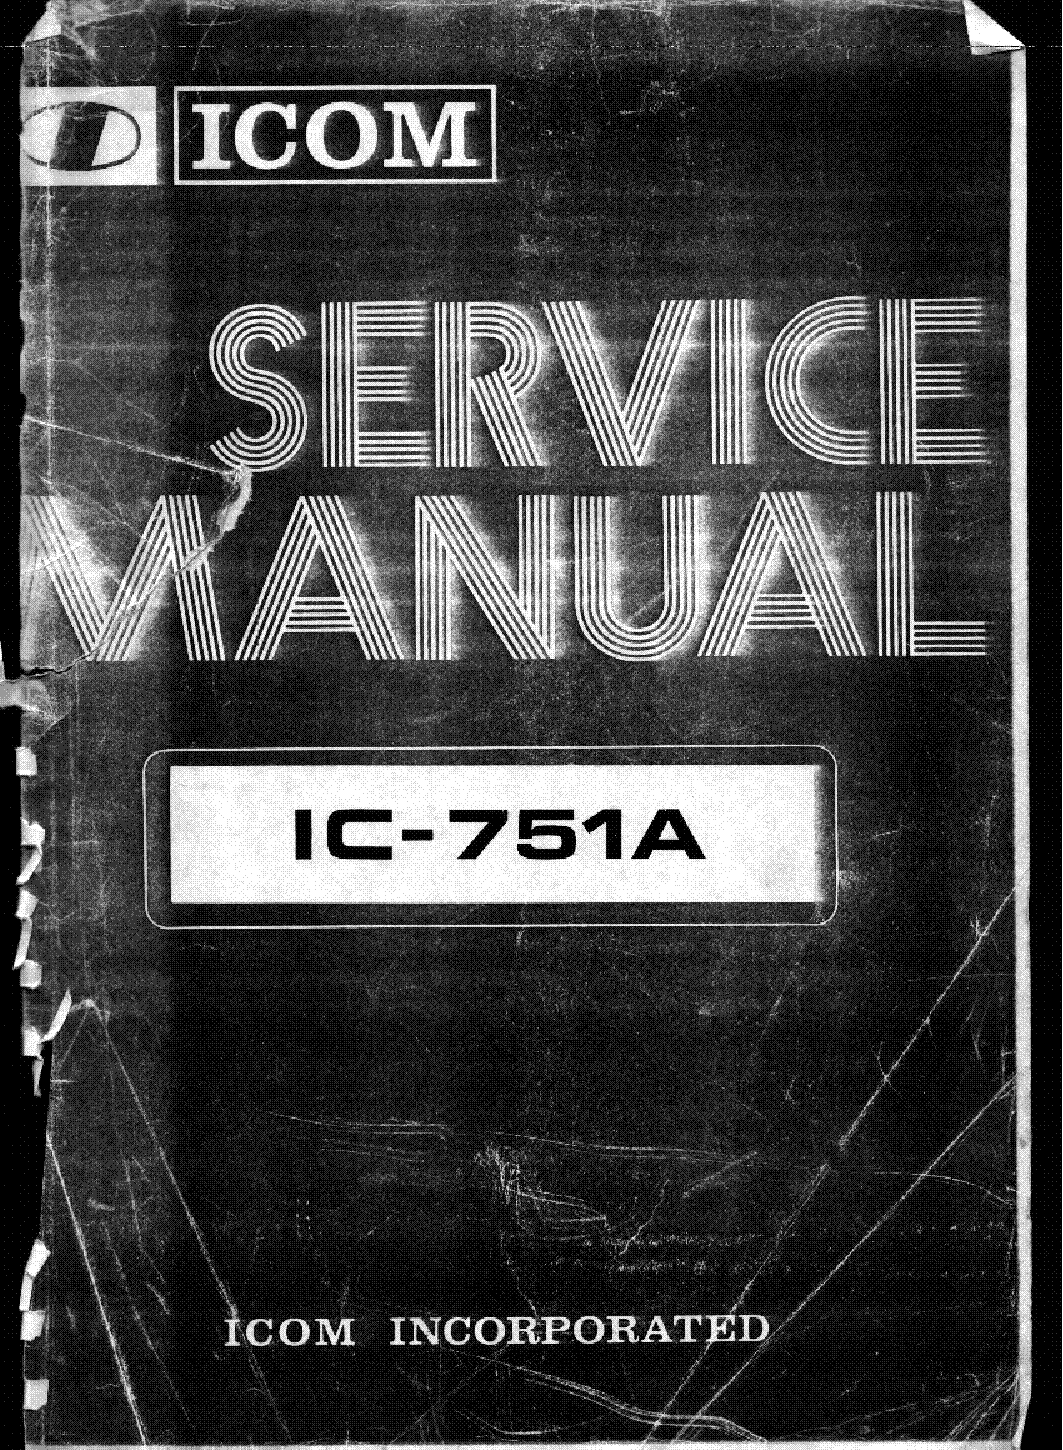 icom ic 751a service manual download schematics eeprom repair rh elektrotanya com ic-751 service manual icom 751a user manual